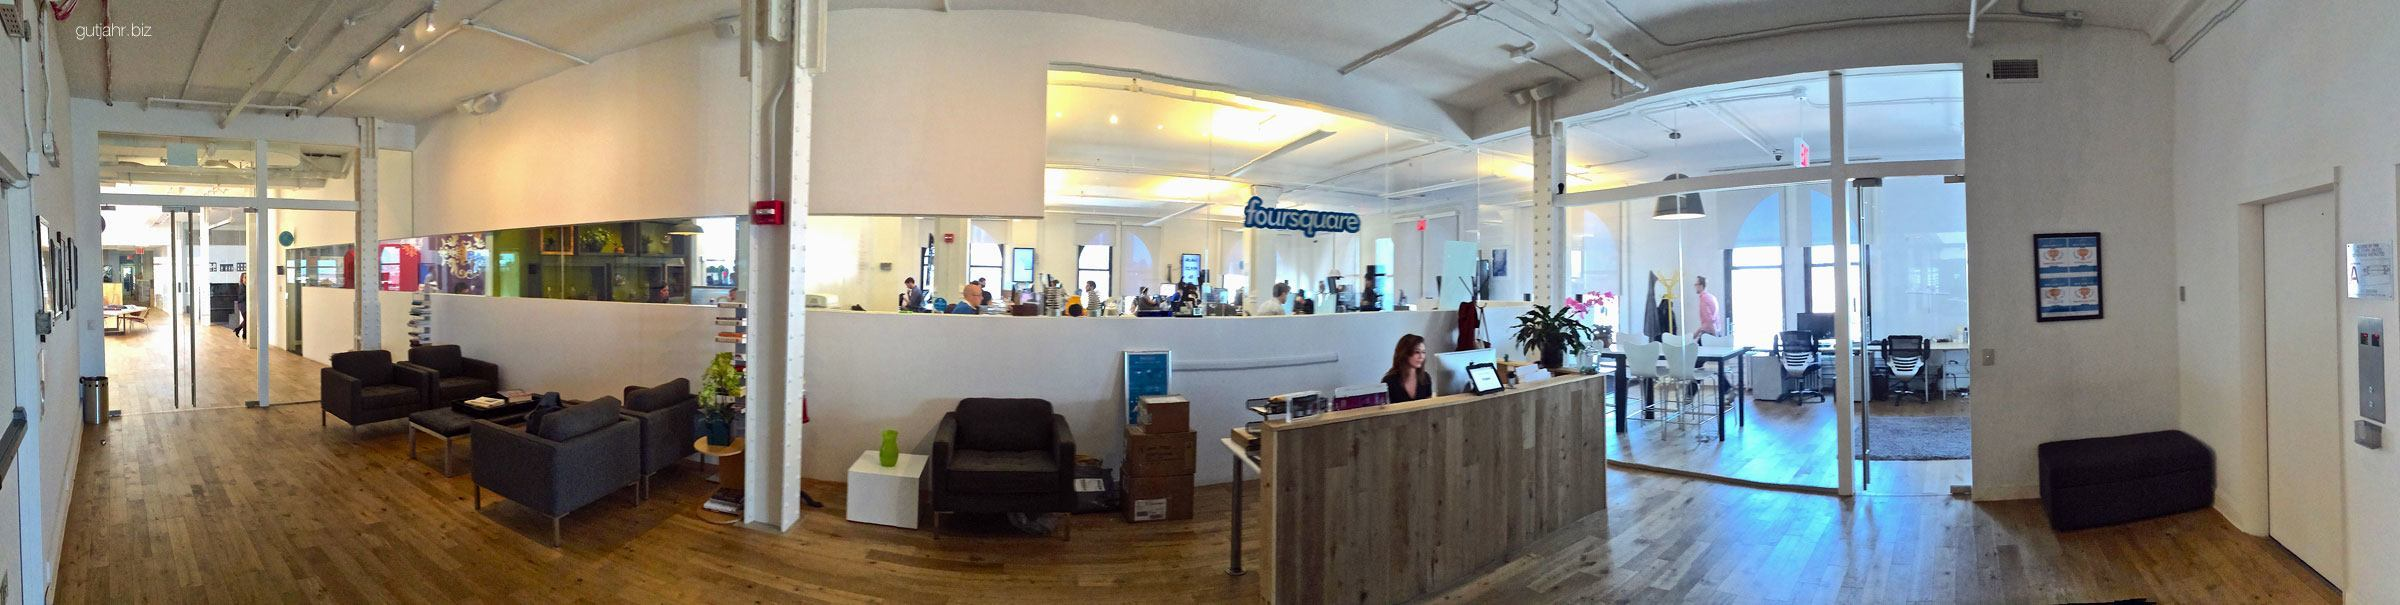 4square-office